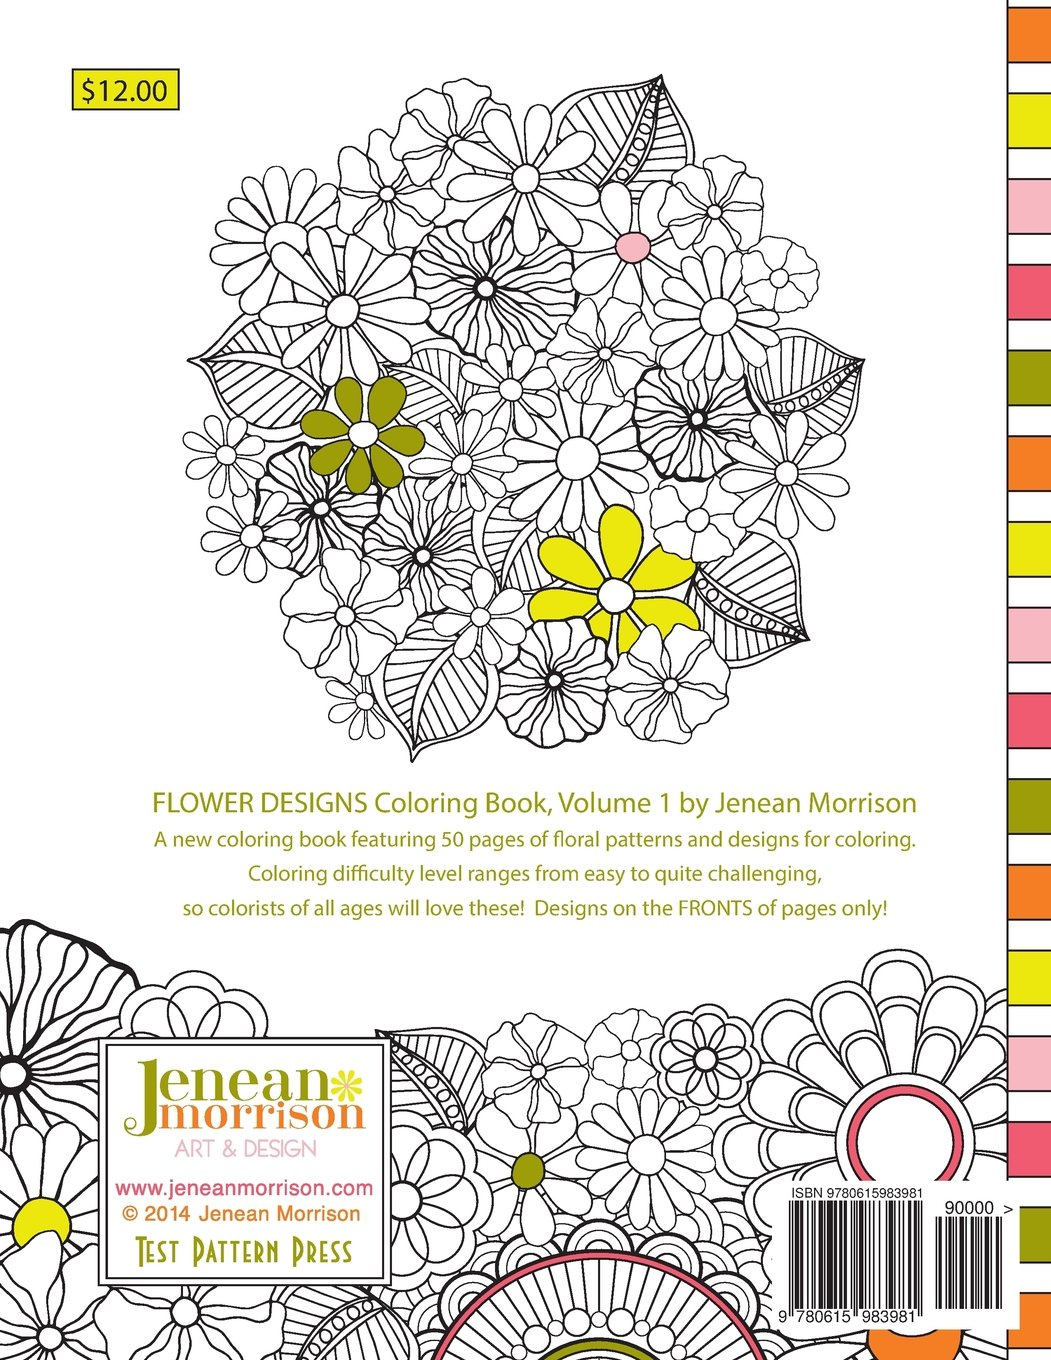 1 Flower Designs Coloring Book An Adult For Stress Relief Relaxation Meditation And Creativity Jenean Morrison Books